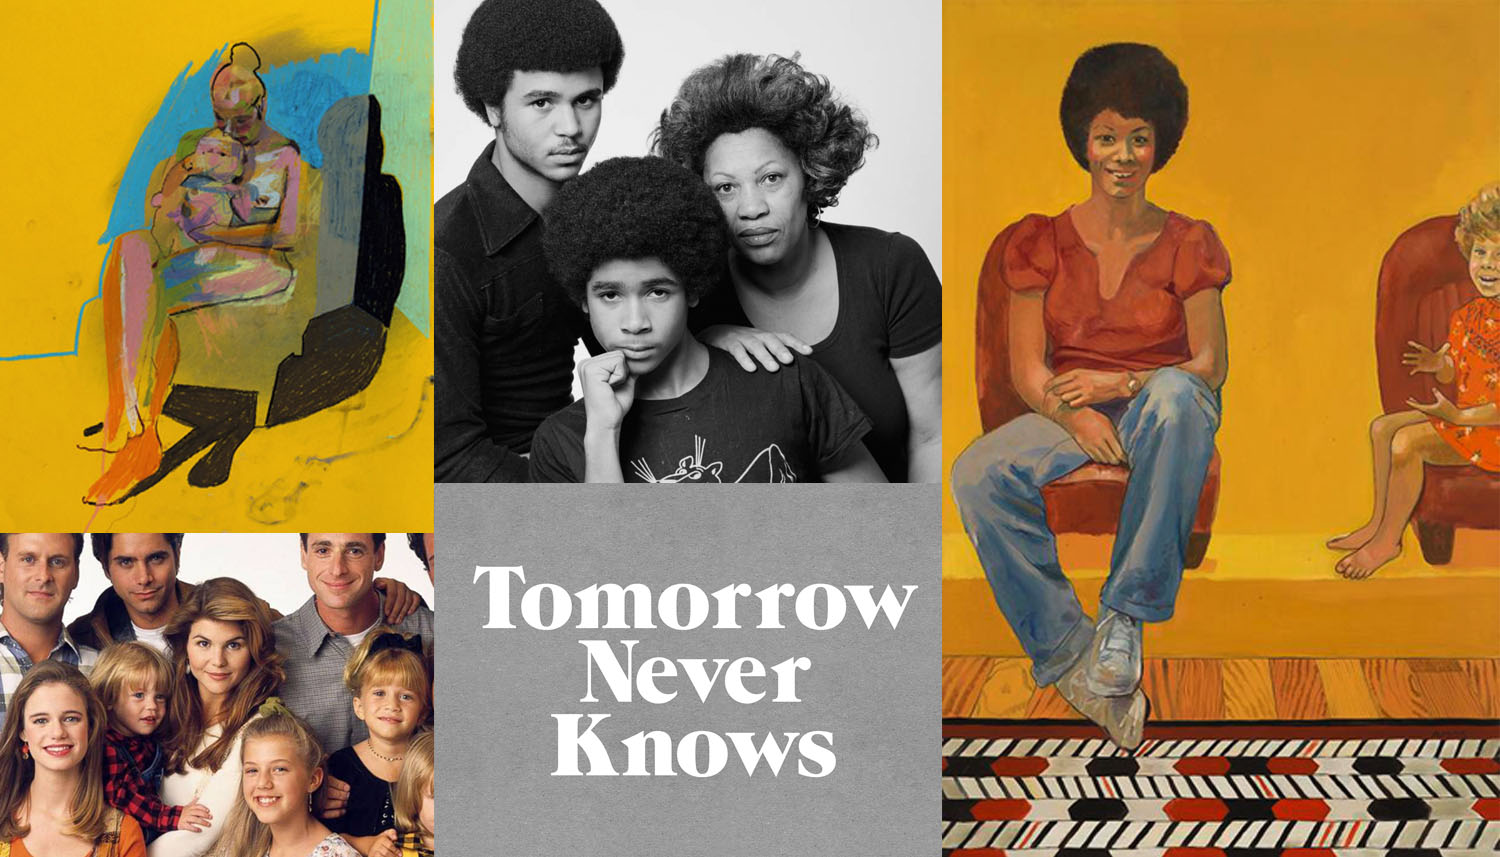 Image credits (CW): drawing by    Hester Finch    // Toni Morrison with her sons, 1978 //    Eva the Babysitter by Emma Amos    (1973) // Logo by 3Dperson // Lori Laughlin with the cast of Full House